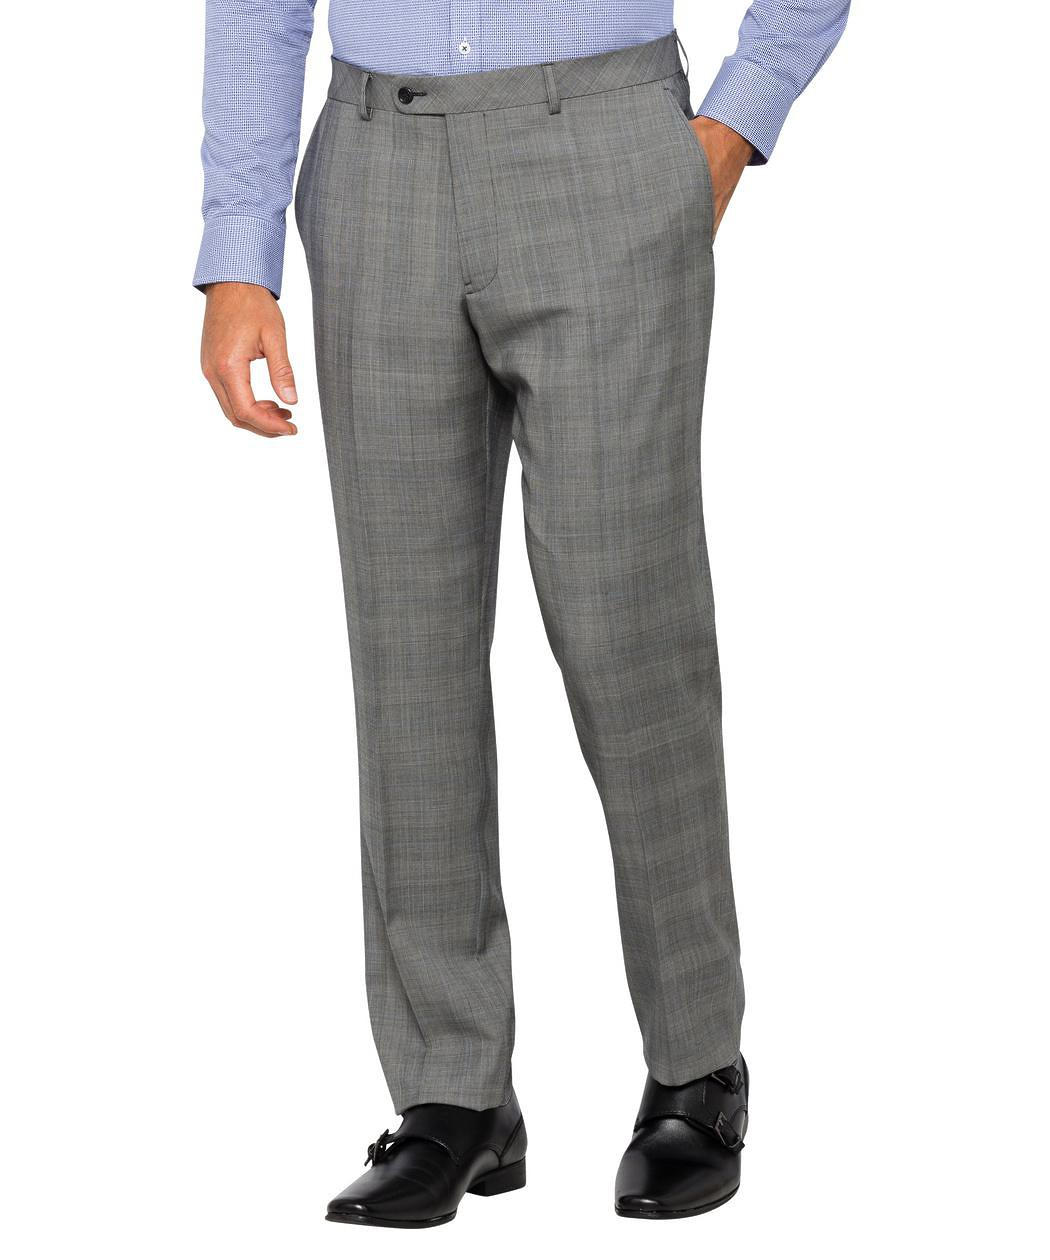 a93d1e20f8 Mens Slim Fit Suit Pant Grey Prince of Wales Check